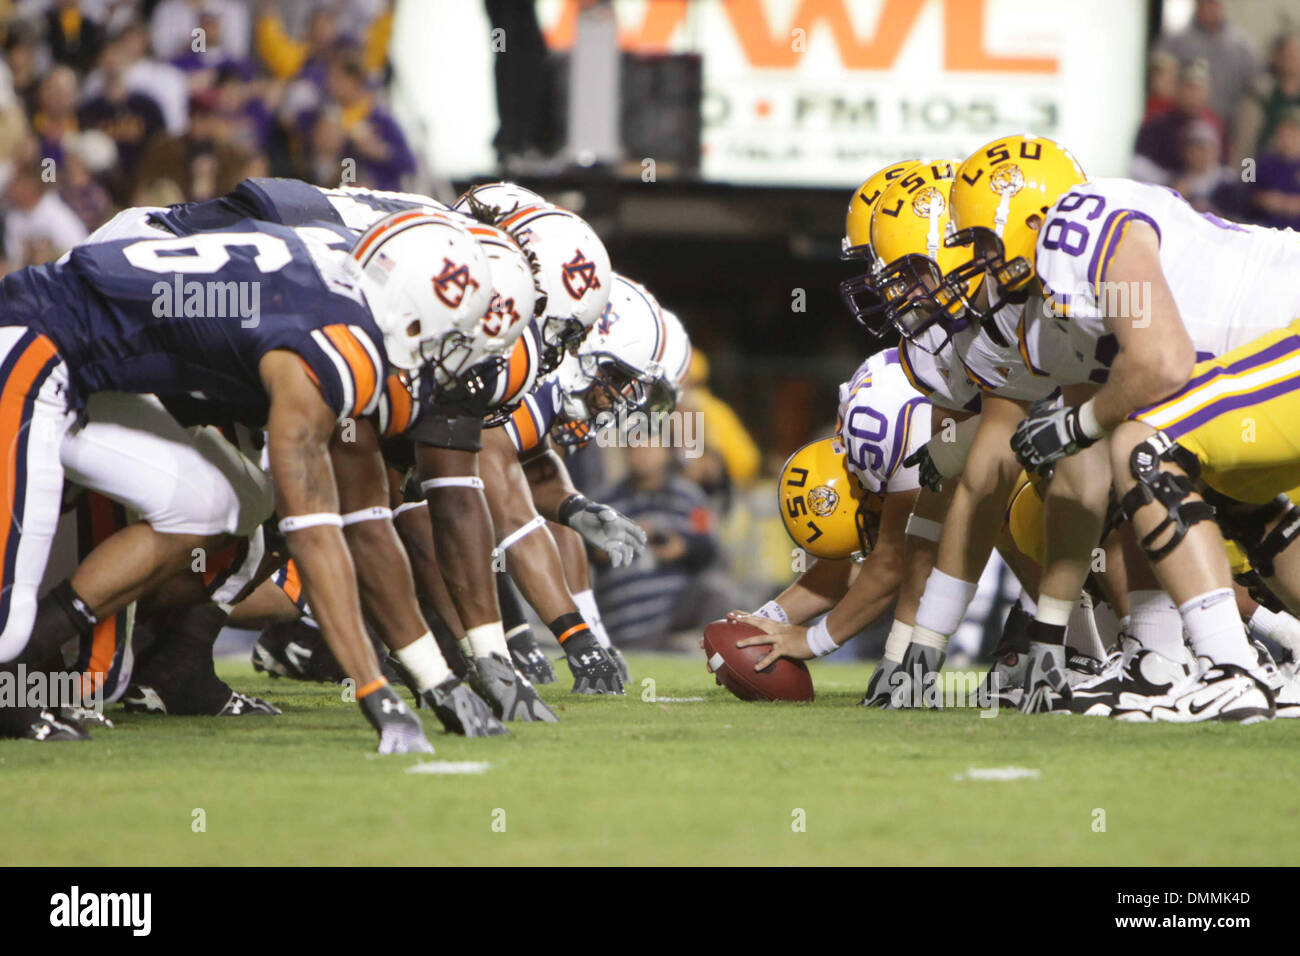 24 October 2009: LSU and Auburn faceoff during the game between the Auburn Tigers and the LSU Tigers at Tiger Stadium in Baton Rouge, LA. (Credit Image: © Southcreek Global/ZUMApress.com) - Stock Image